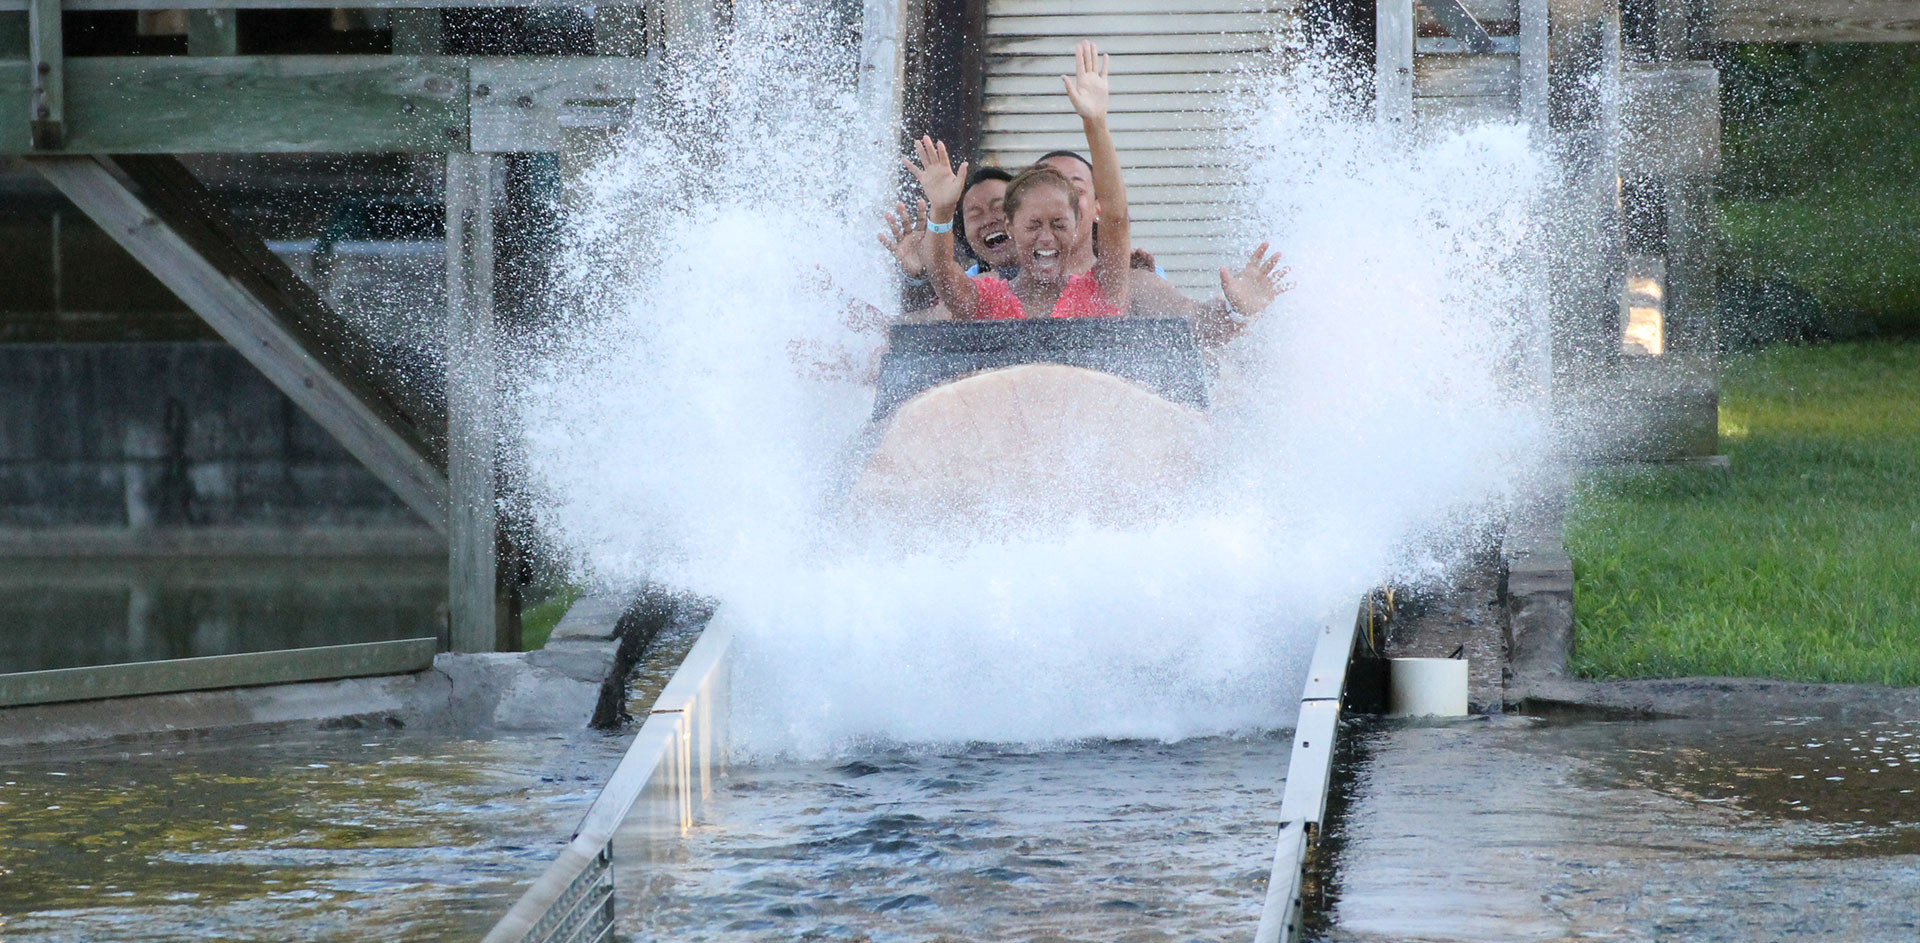 People emerge from Log Flume ride and get soaked with water.